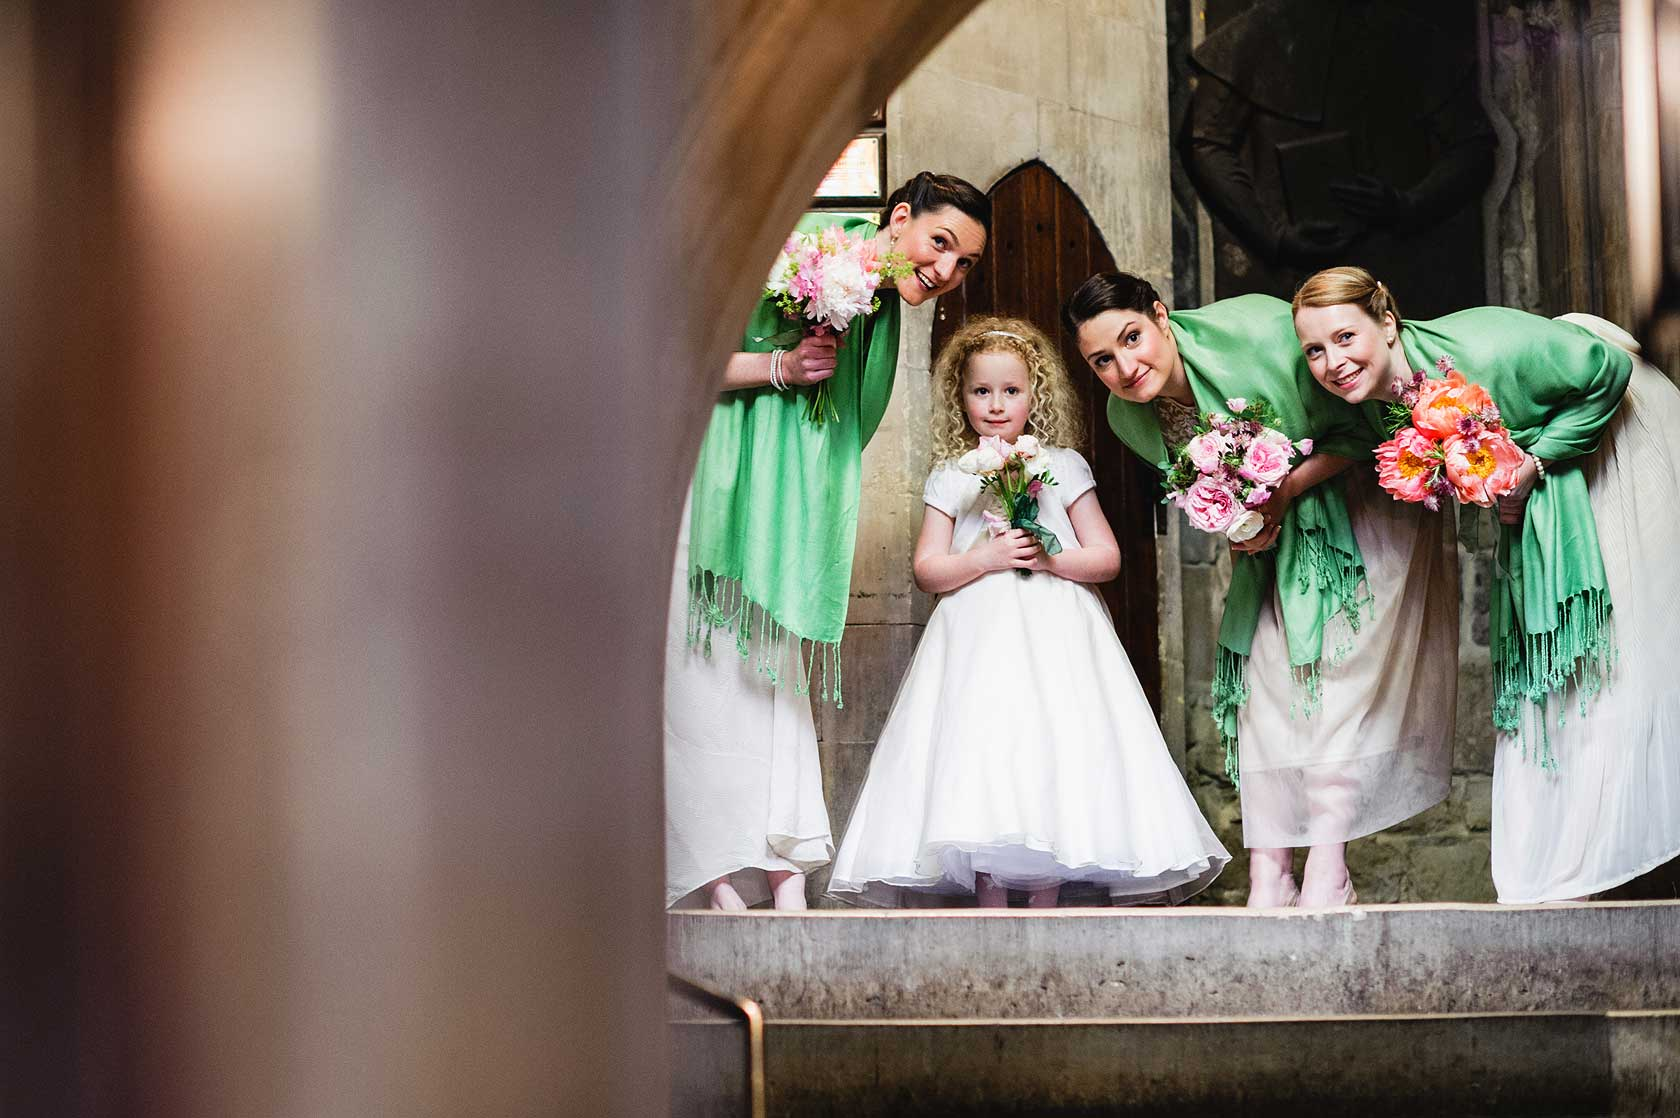 Reportage Wedding Photography at The Tab Centre